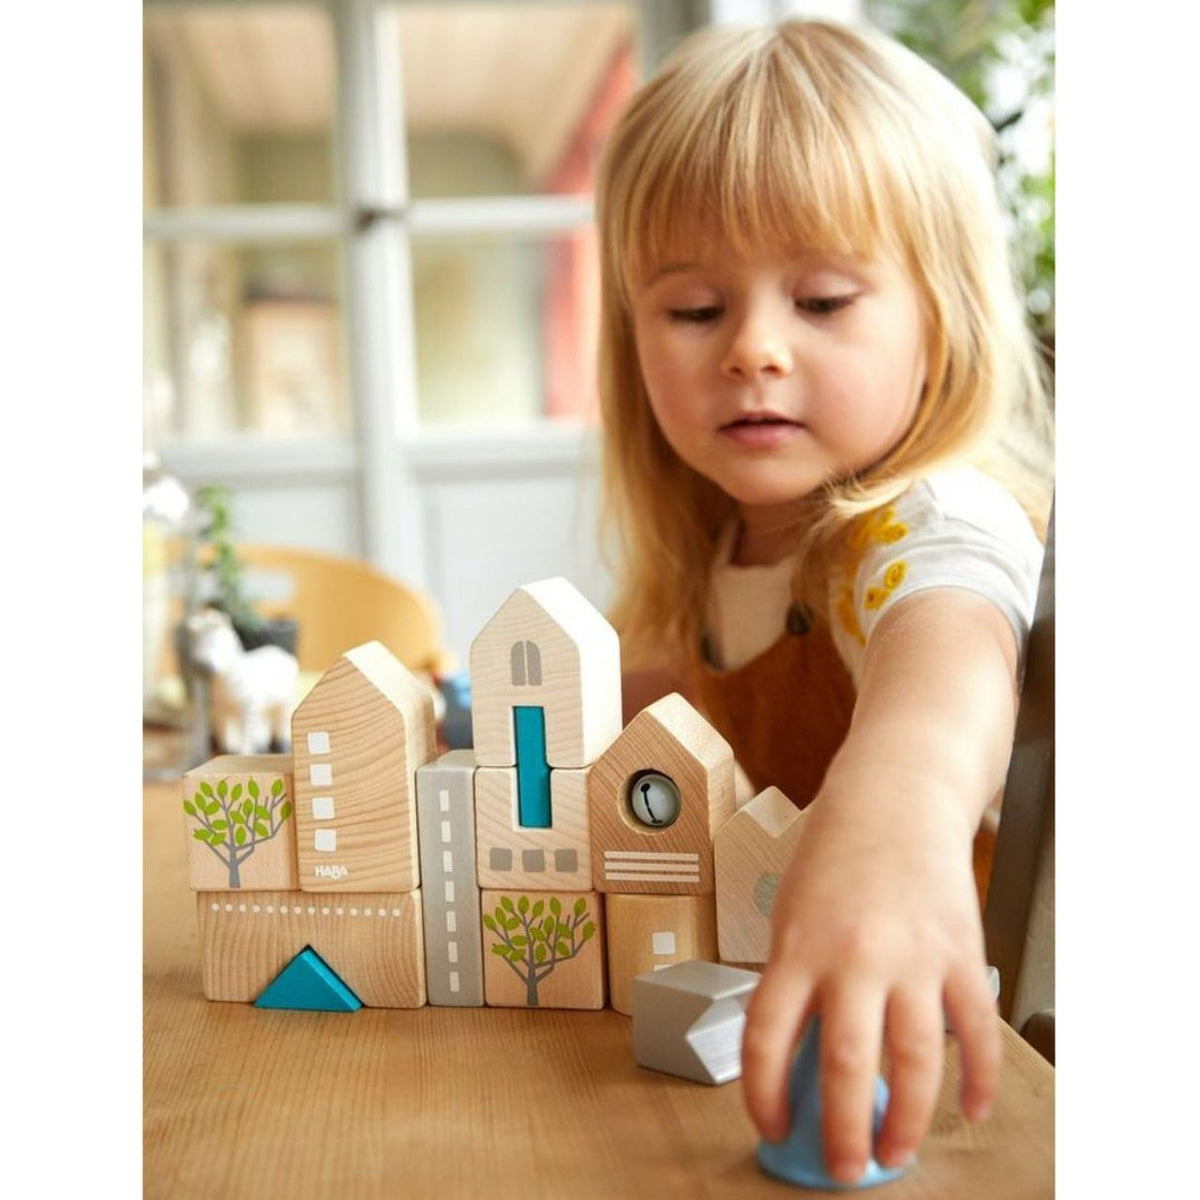 Haba Bad Rodach Building Blocks